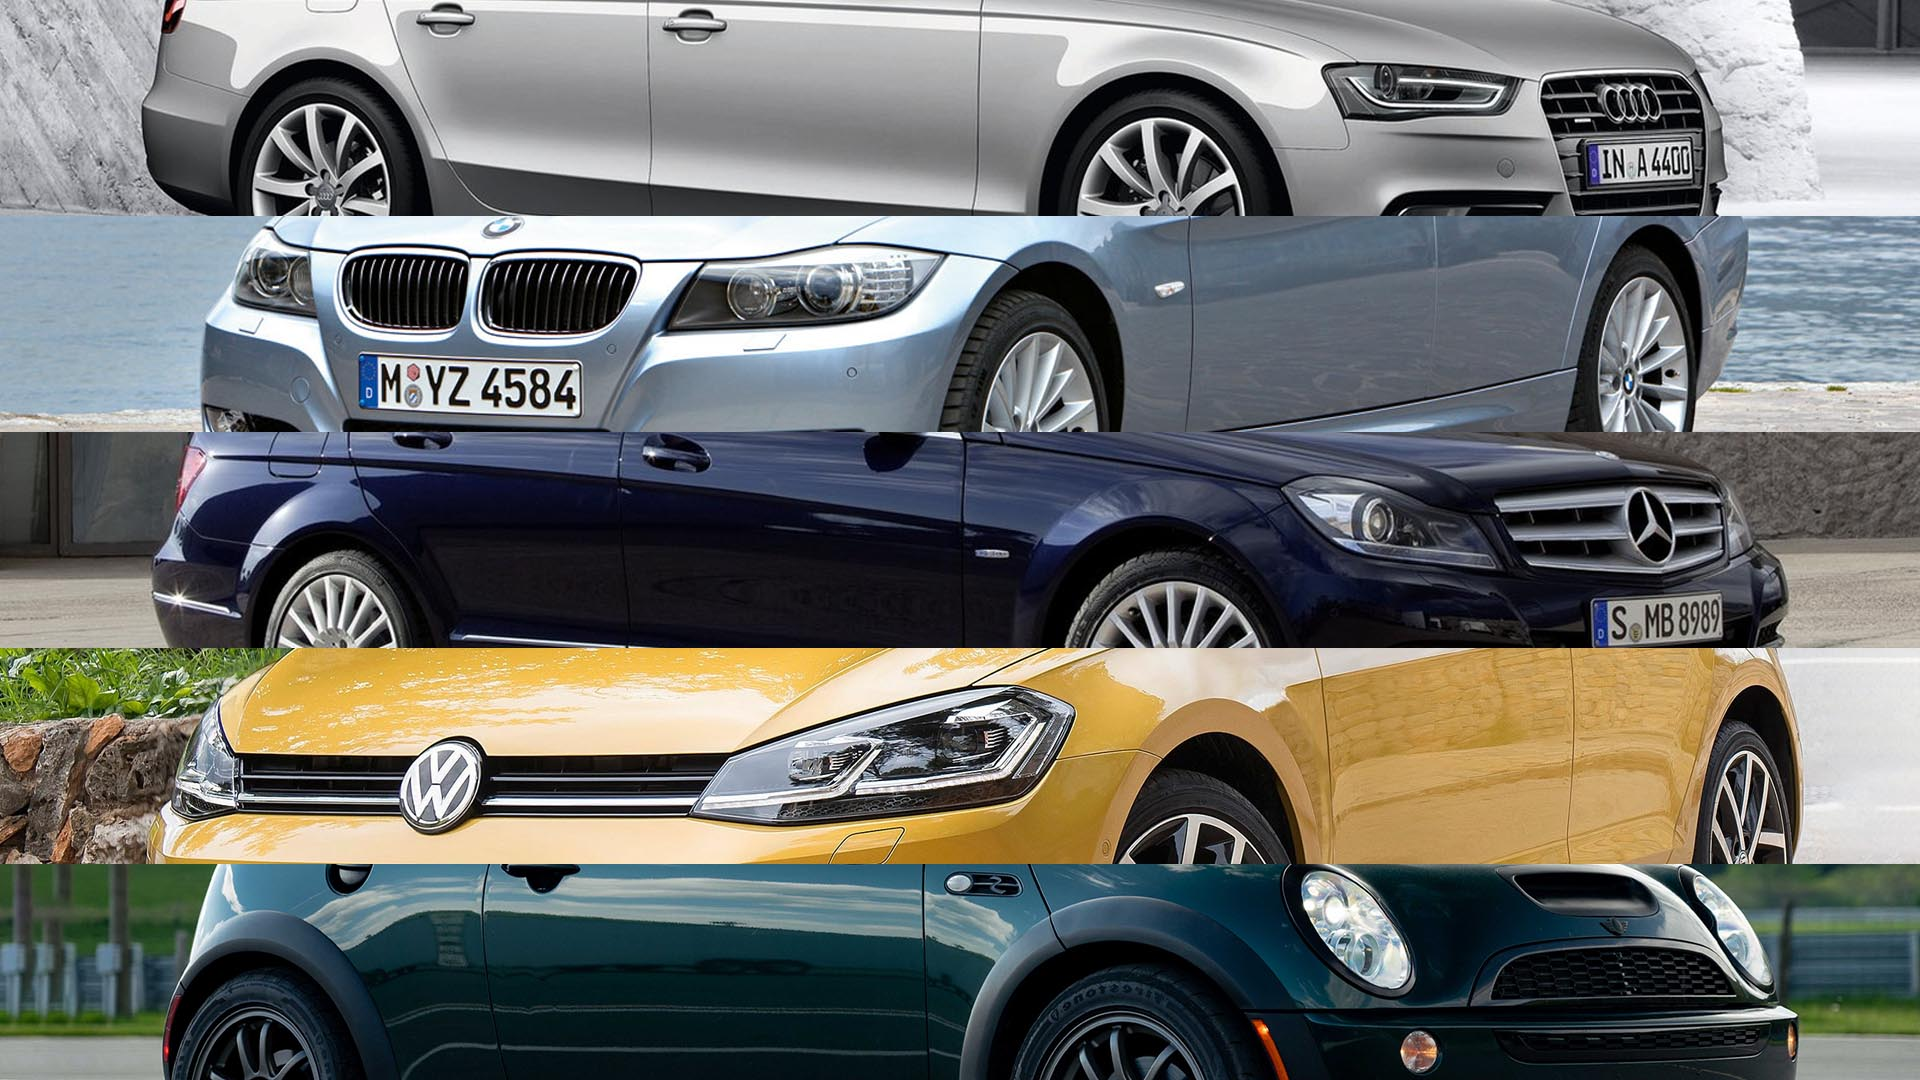 5 European Cars For First-Time Car Buyers And Recent College Graduates